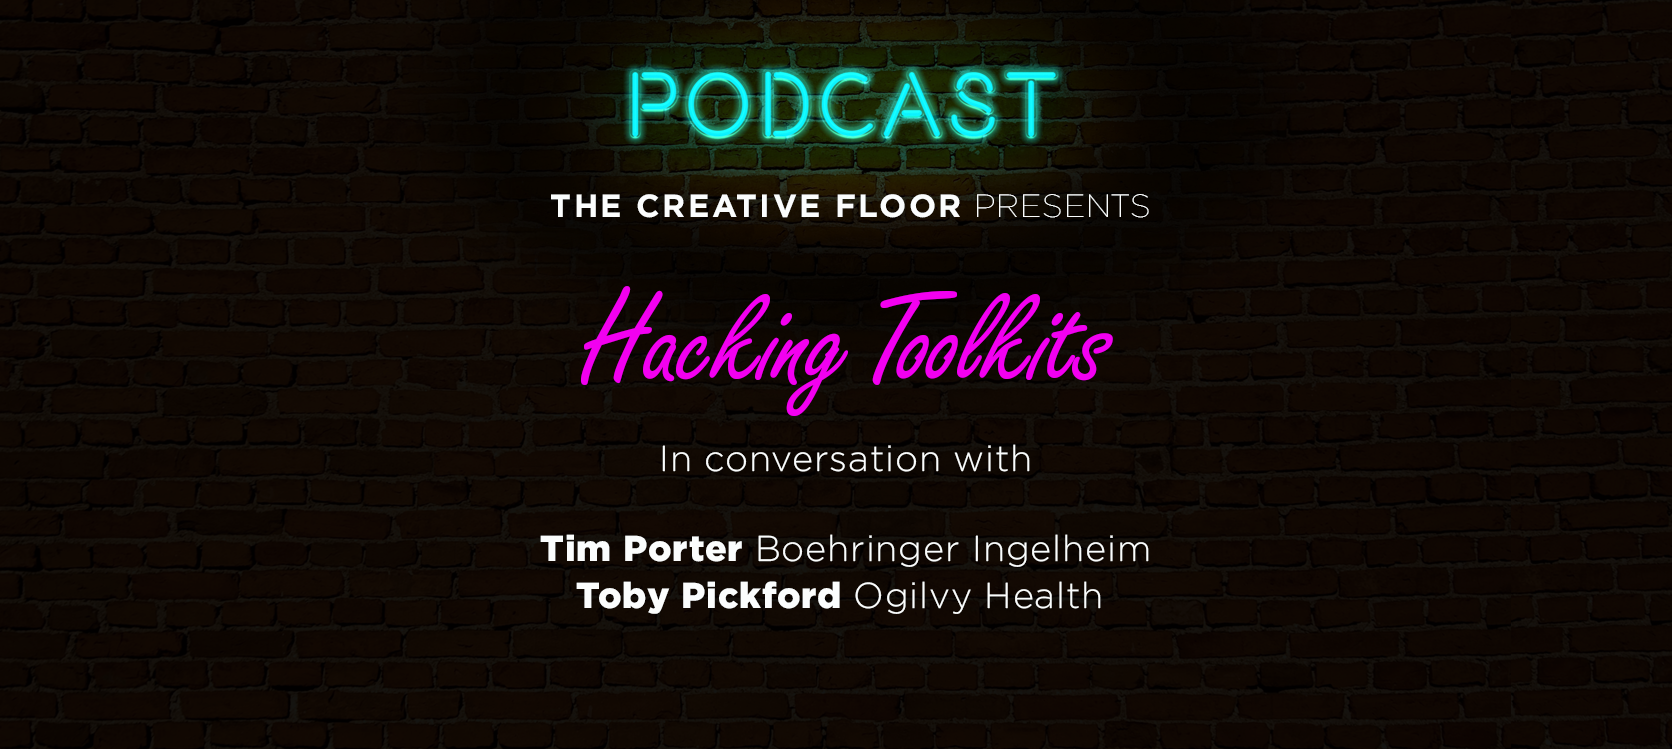 Podcast_Hacking Toolkits